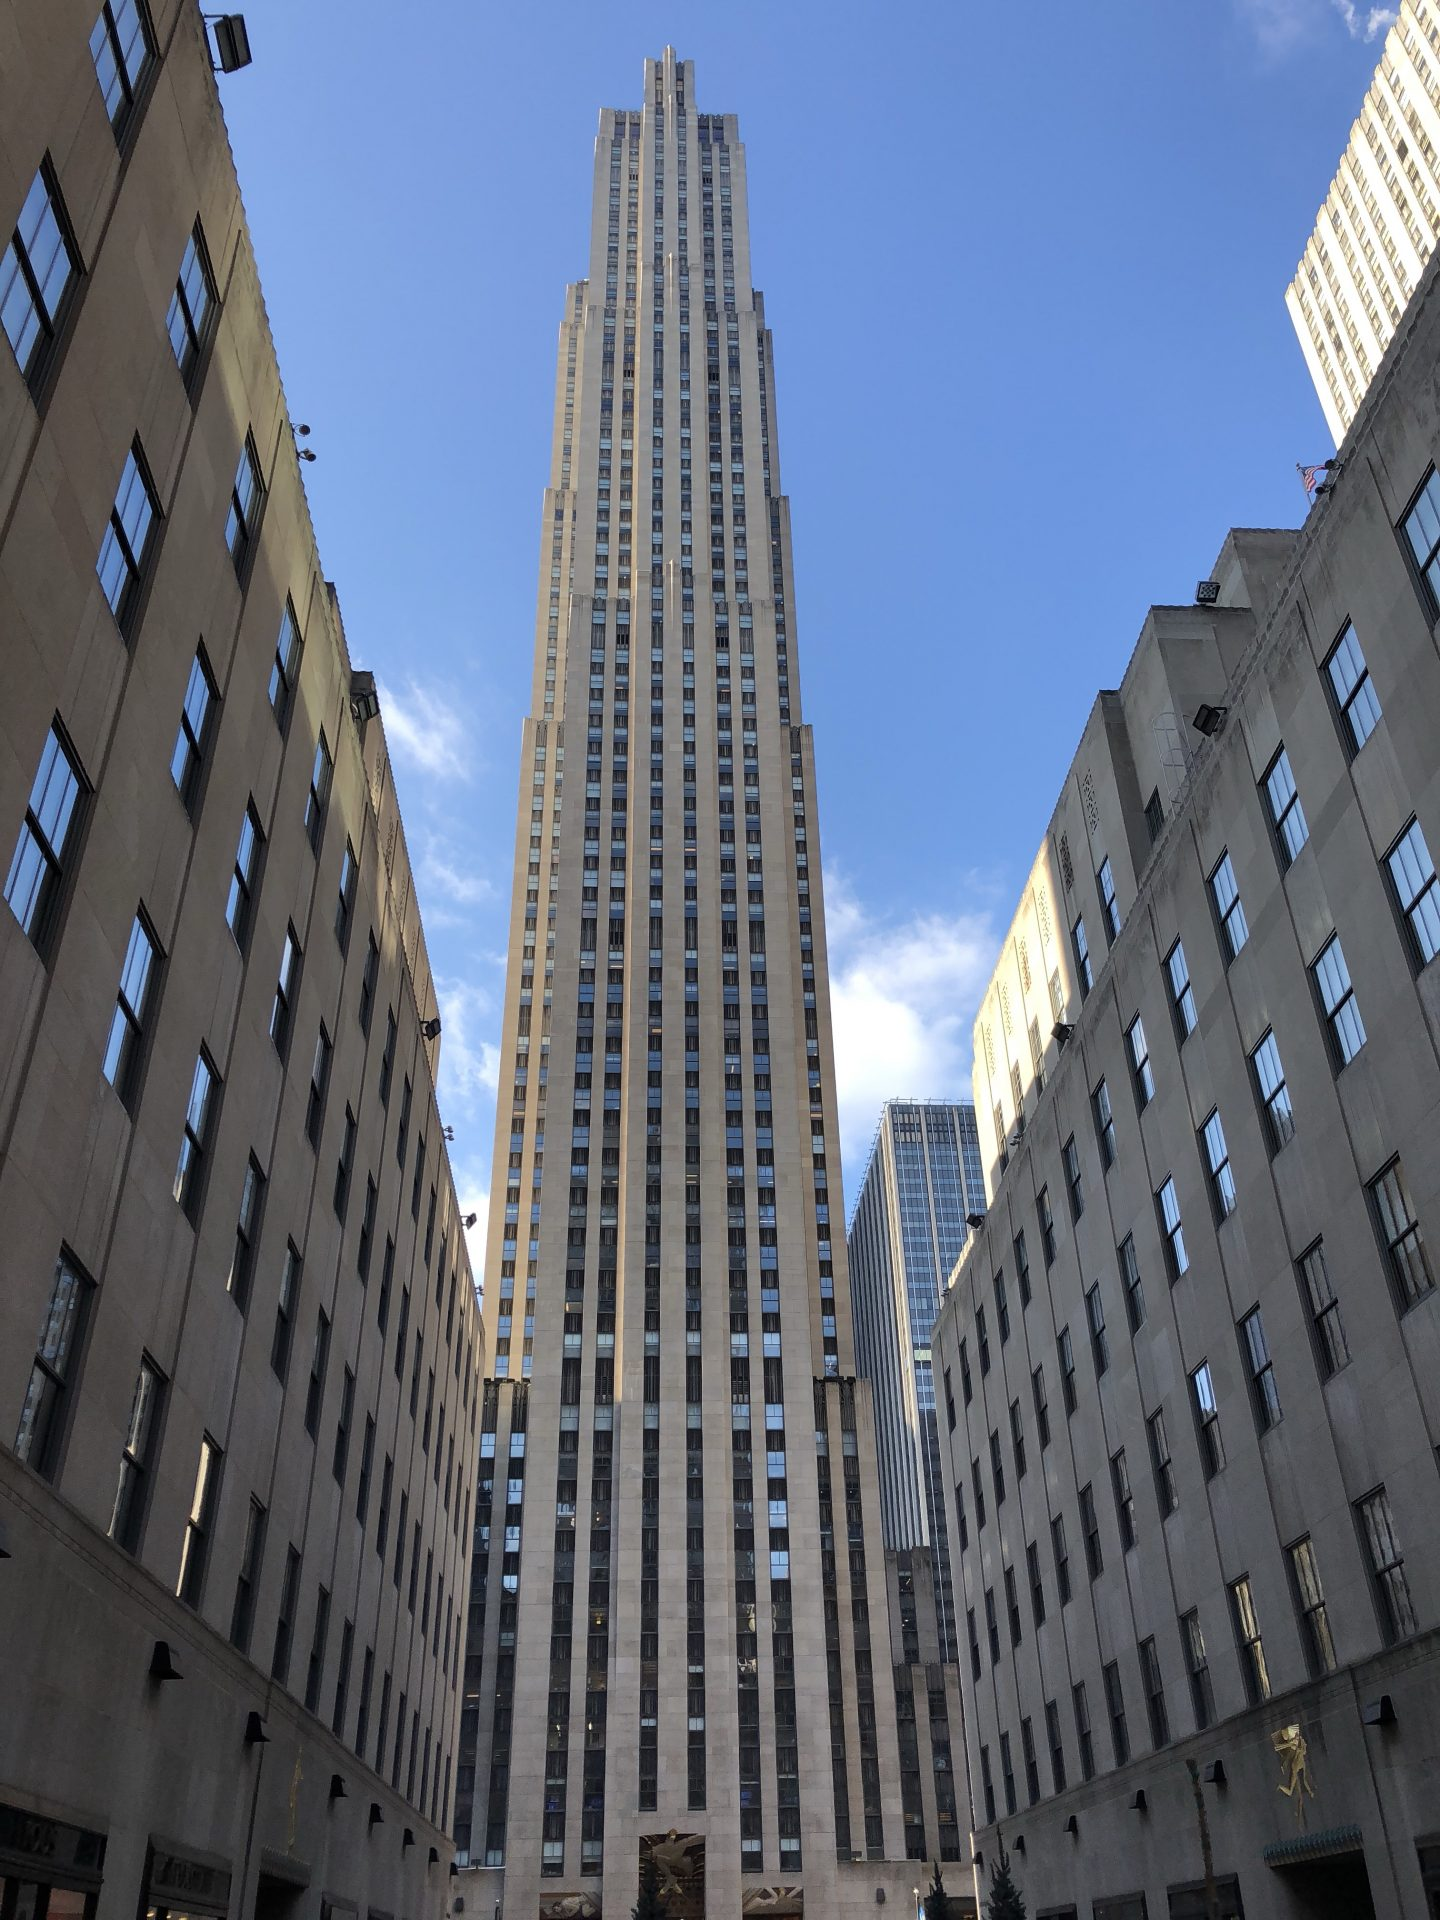 A photo of the Rockefeller Centre showing all 70 floors